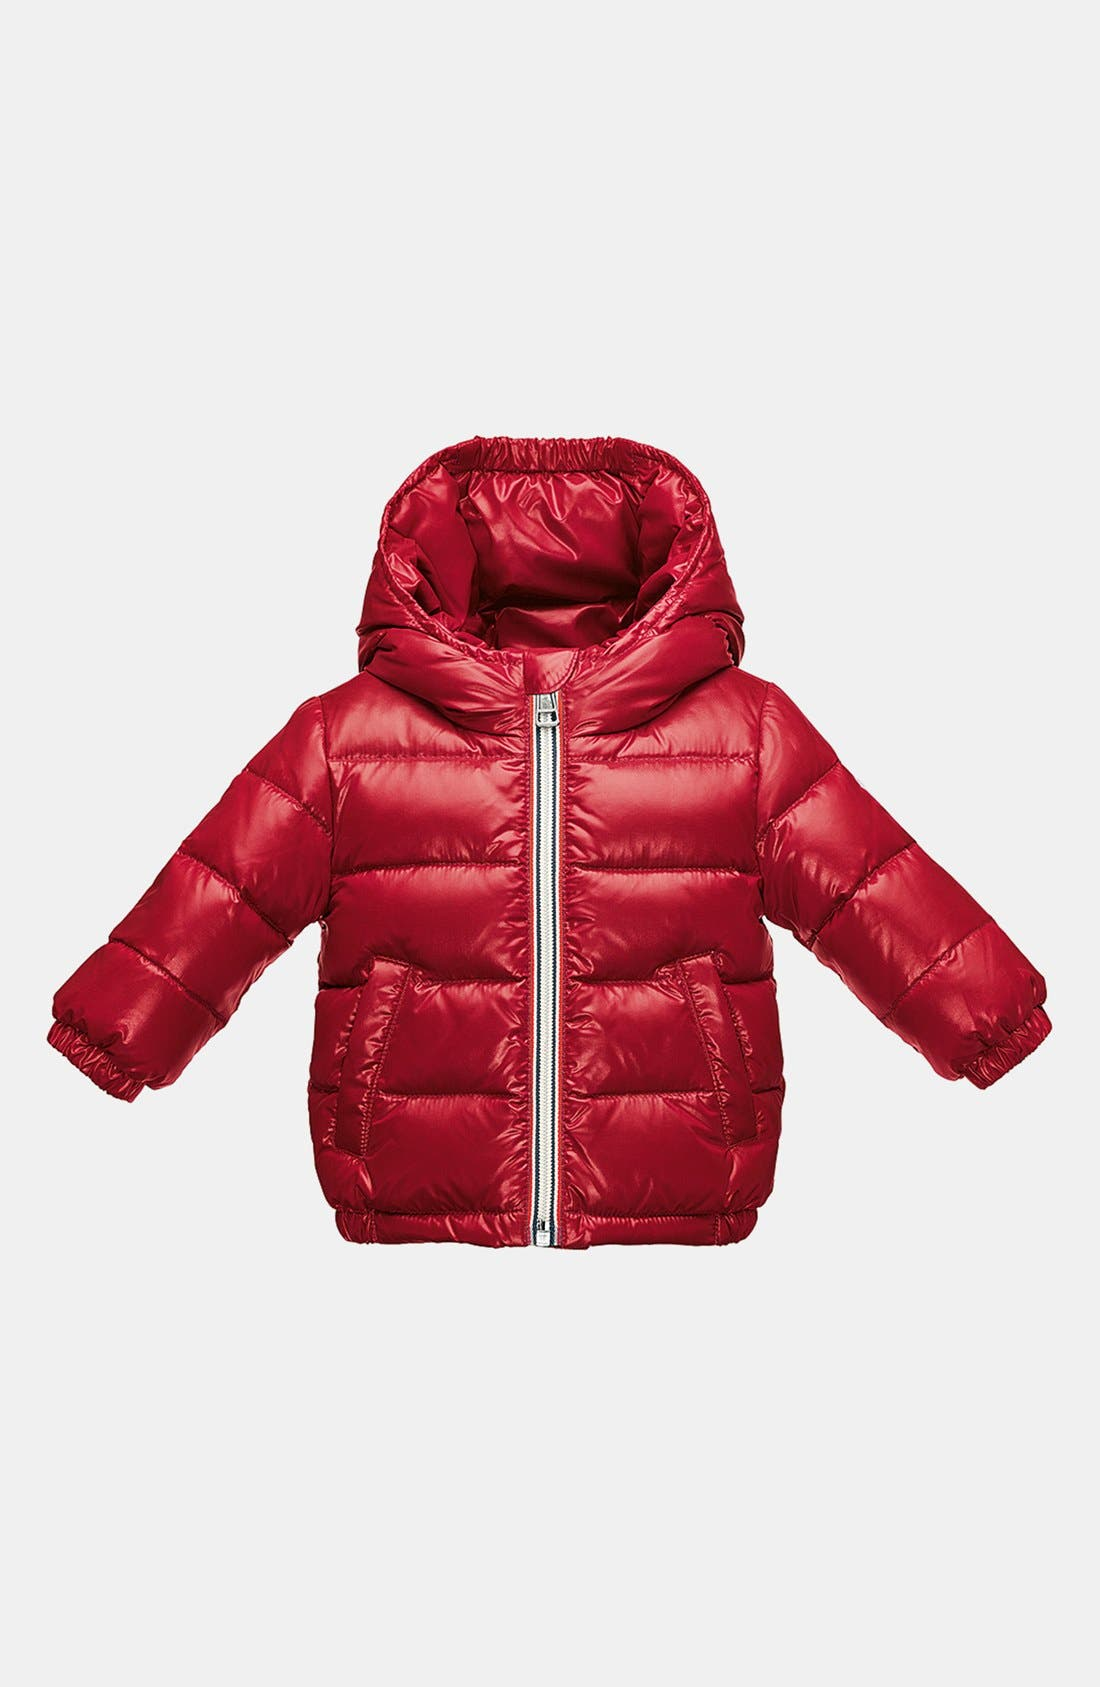 Alternate Image 1 Selected - Moncler 'Aubert' Jacket (Baby Boys)